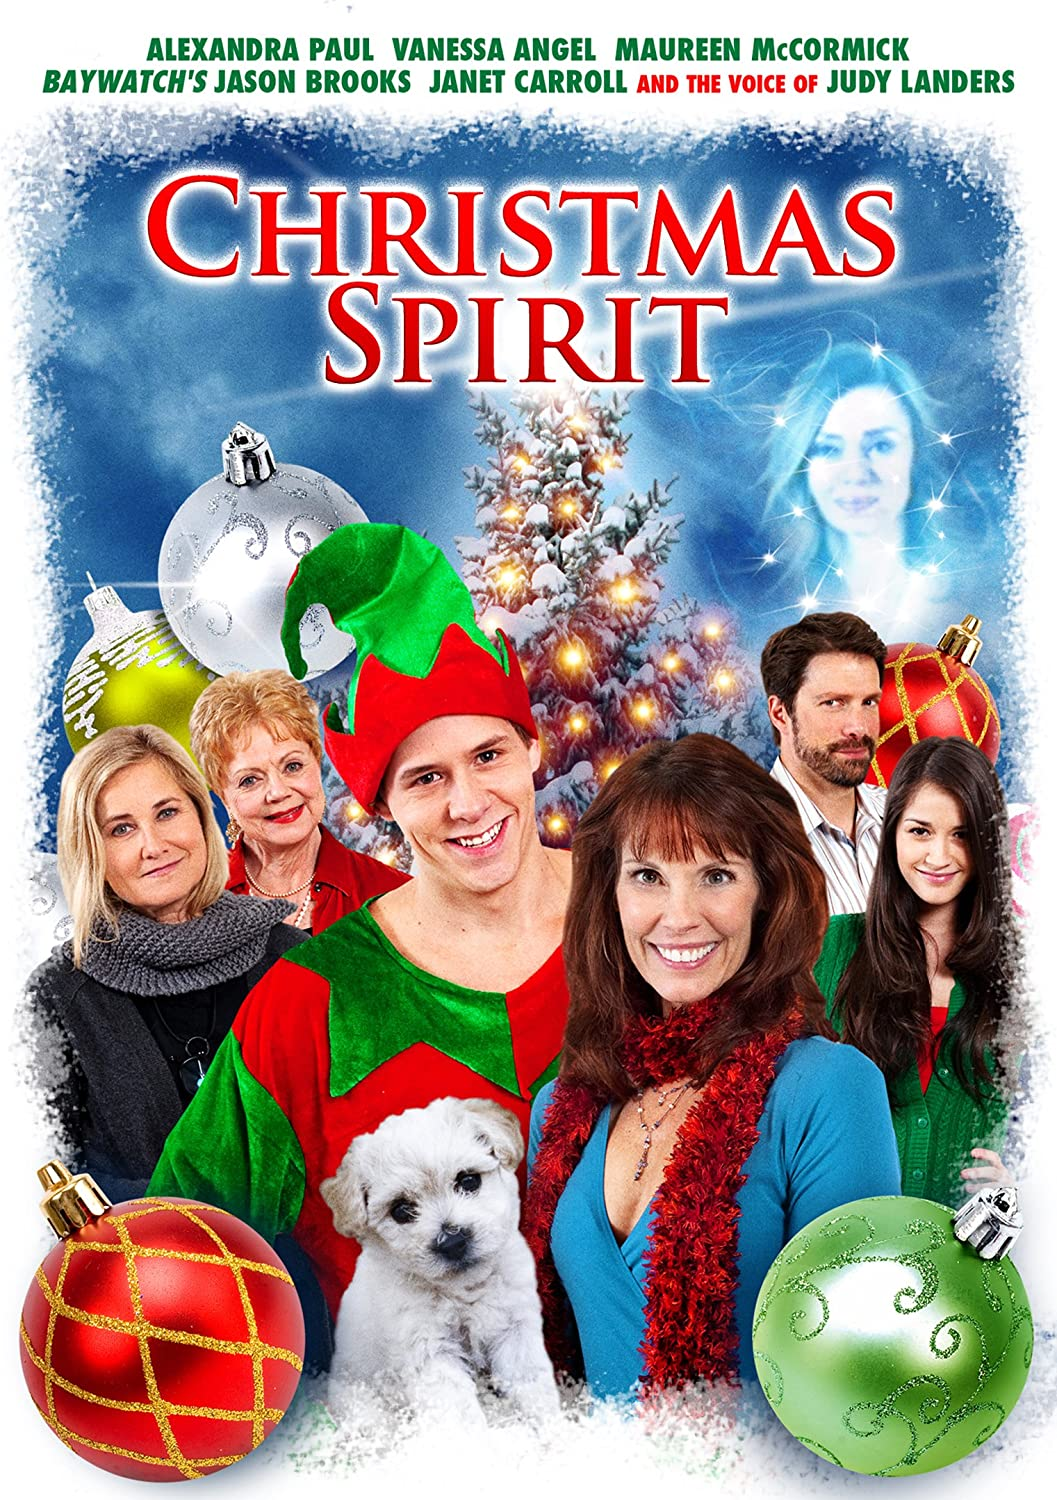 Amazon.com: Christmas Spirit: Alexandra Paul, Vanessa Angel, Maureen ...